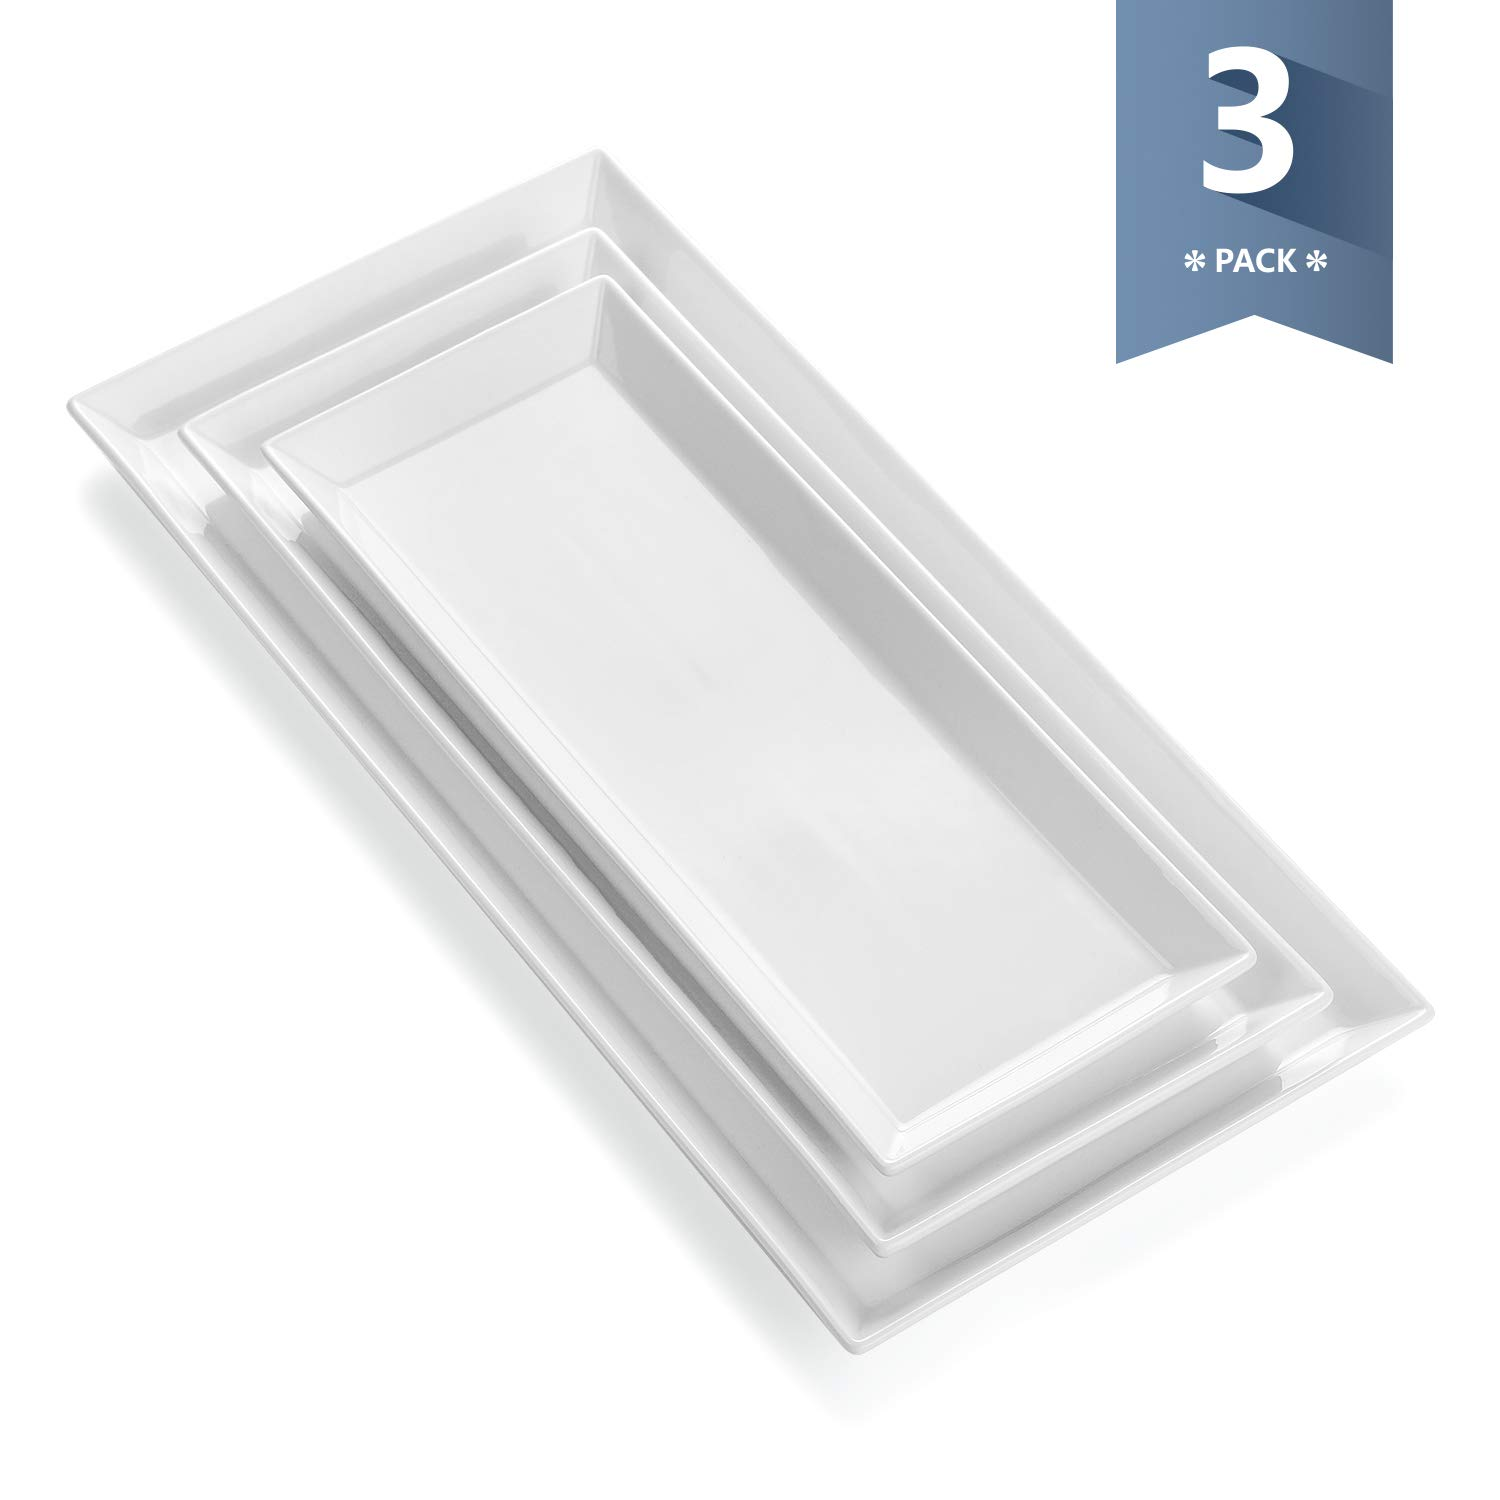 Sweese 3308 Porcelain Rectangular Platters/Serving trays for parties, Set of 3, Large/Medium/Small Size, White by Sweese (Image #1)